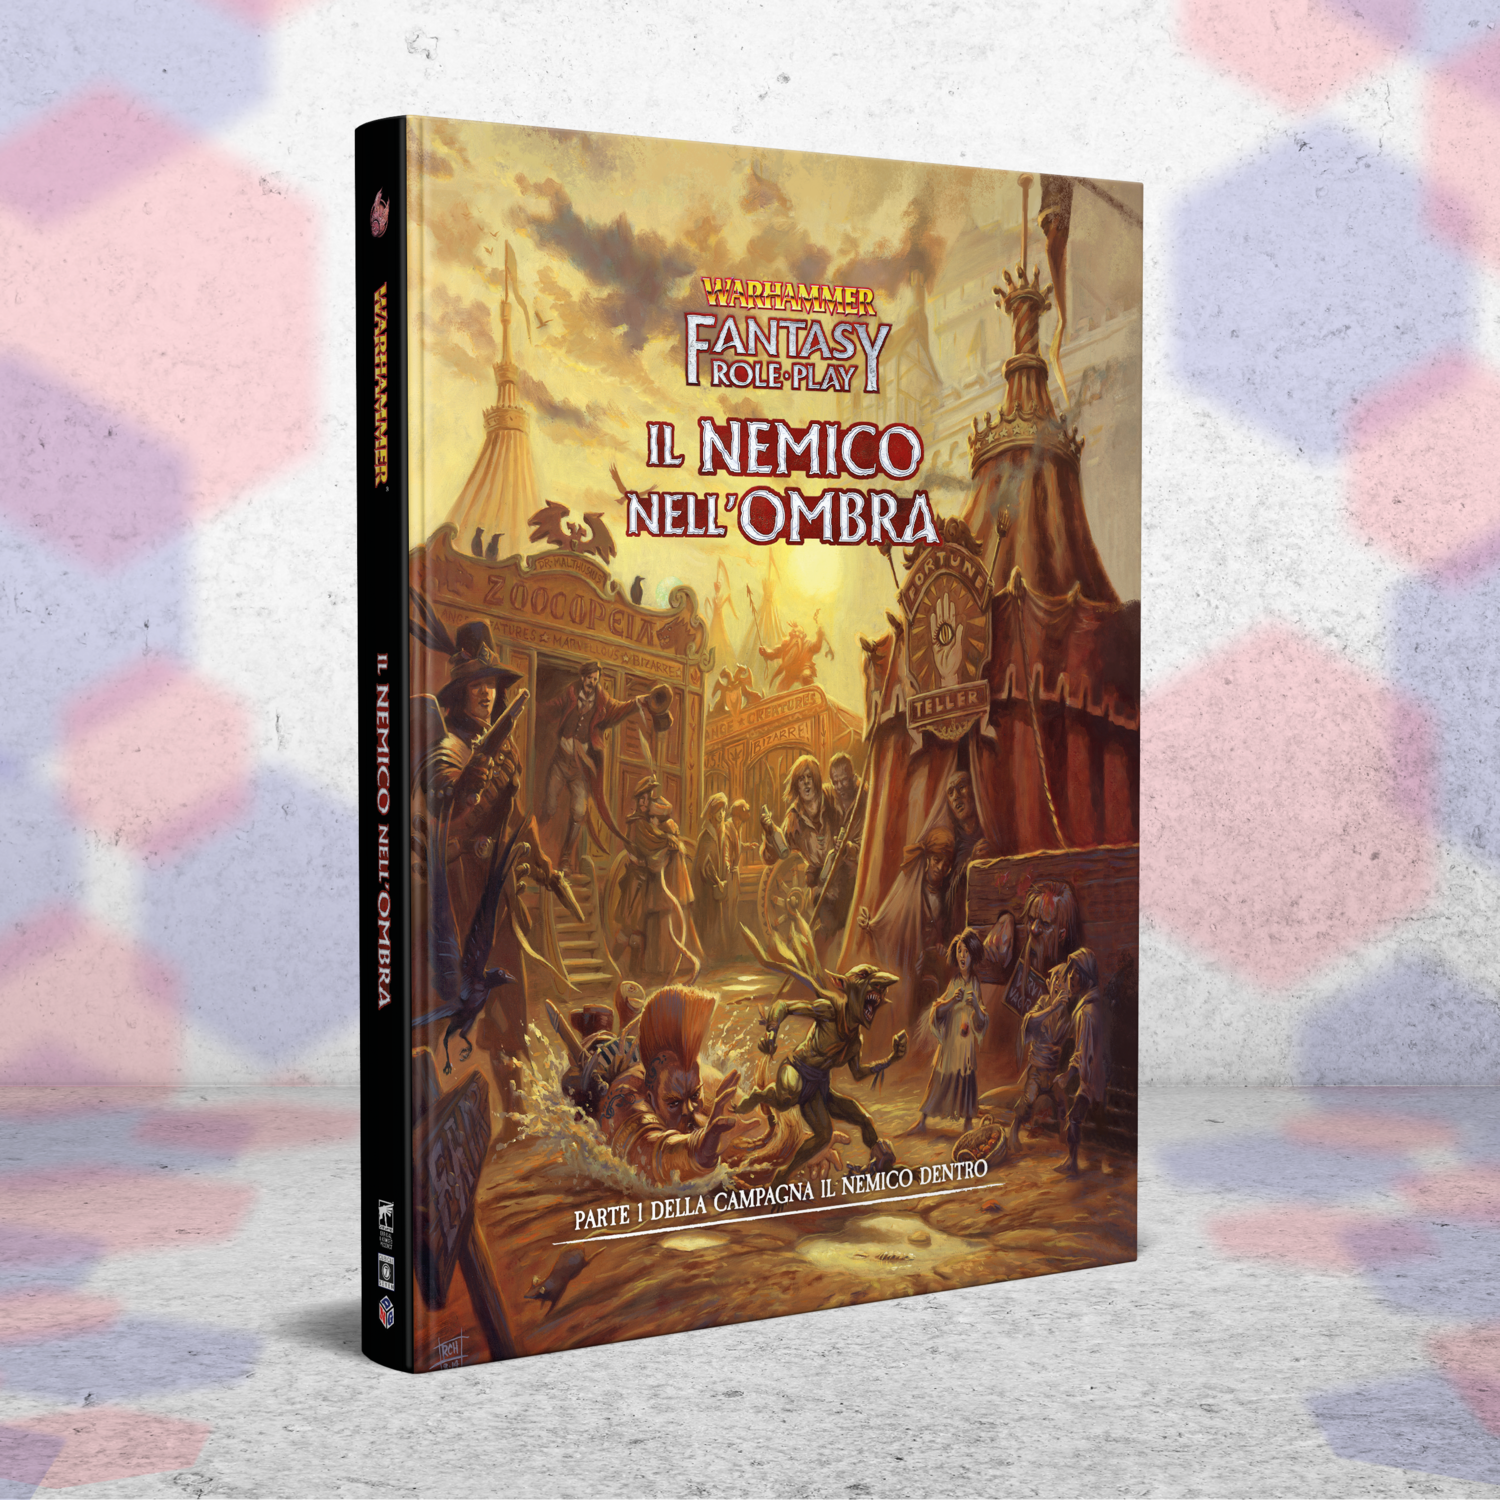 Warhammer Fantasy Role-Play -Il Nemico nell'Ombra